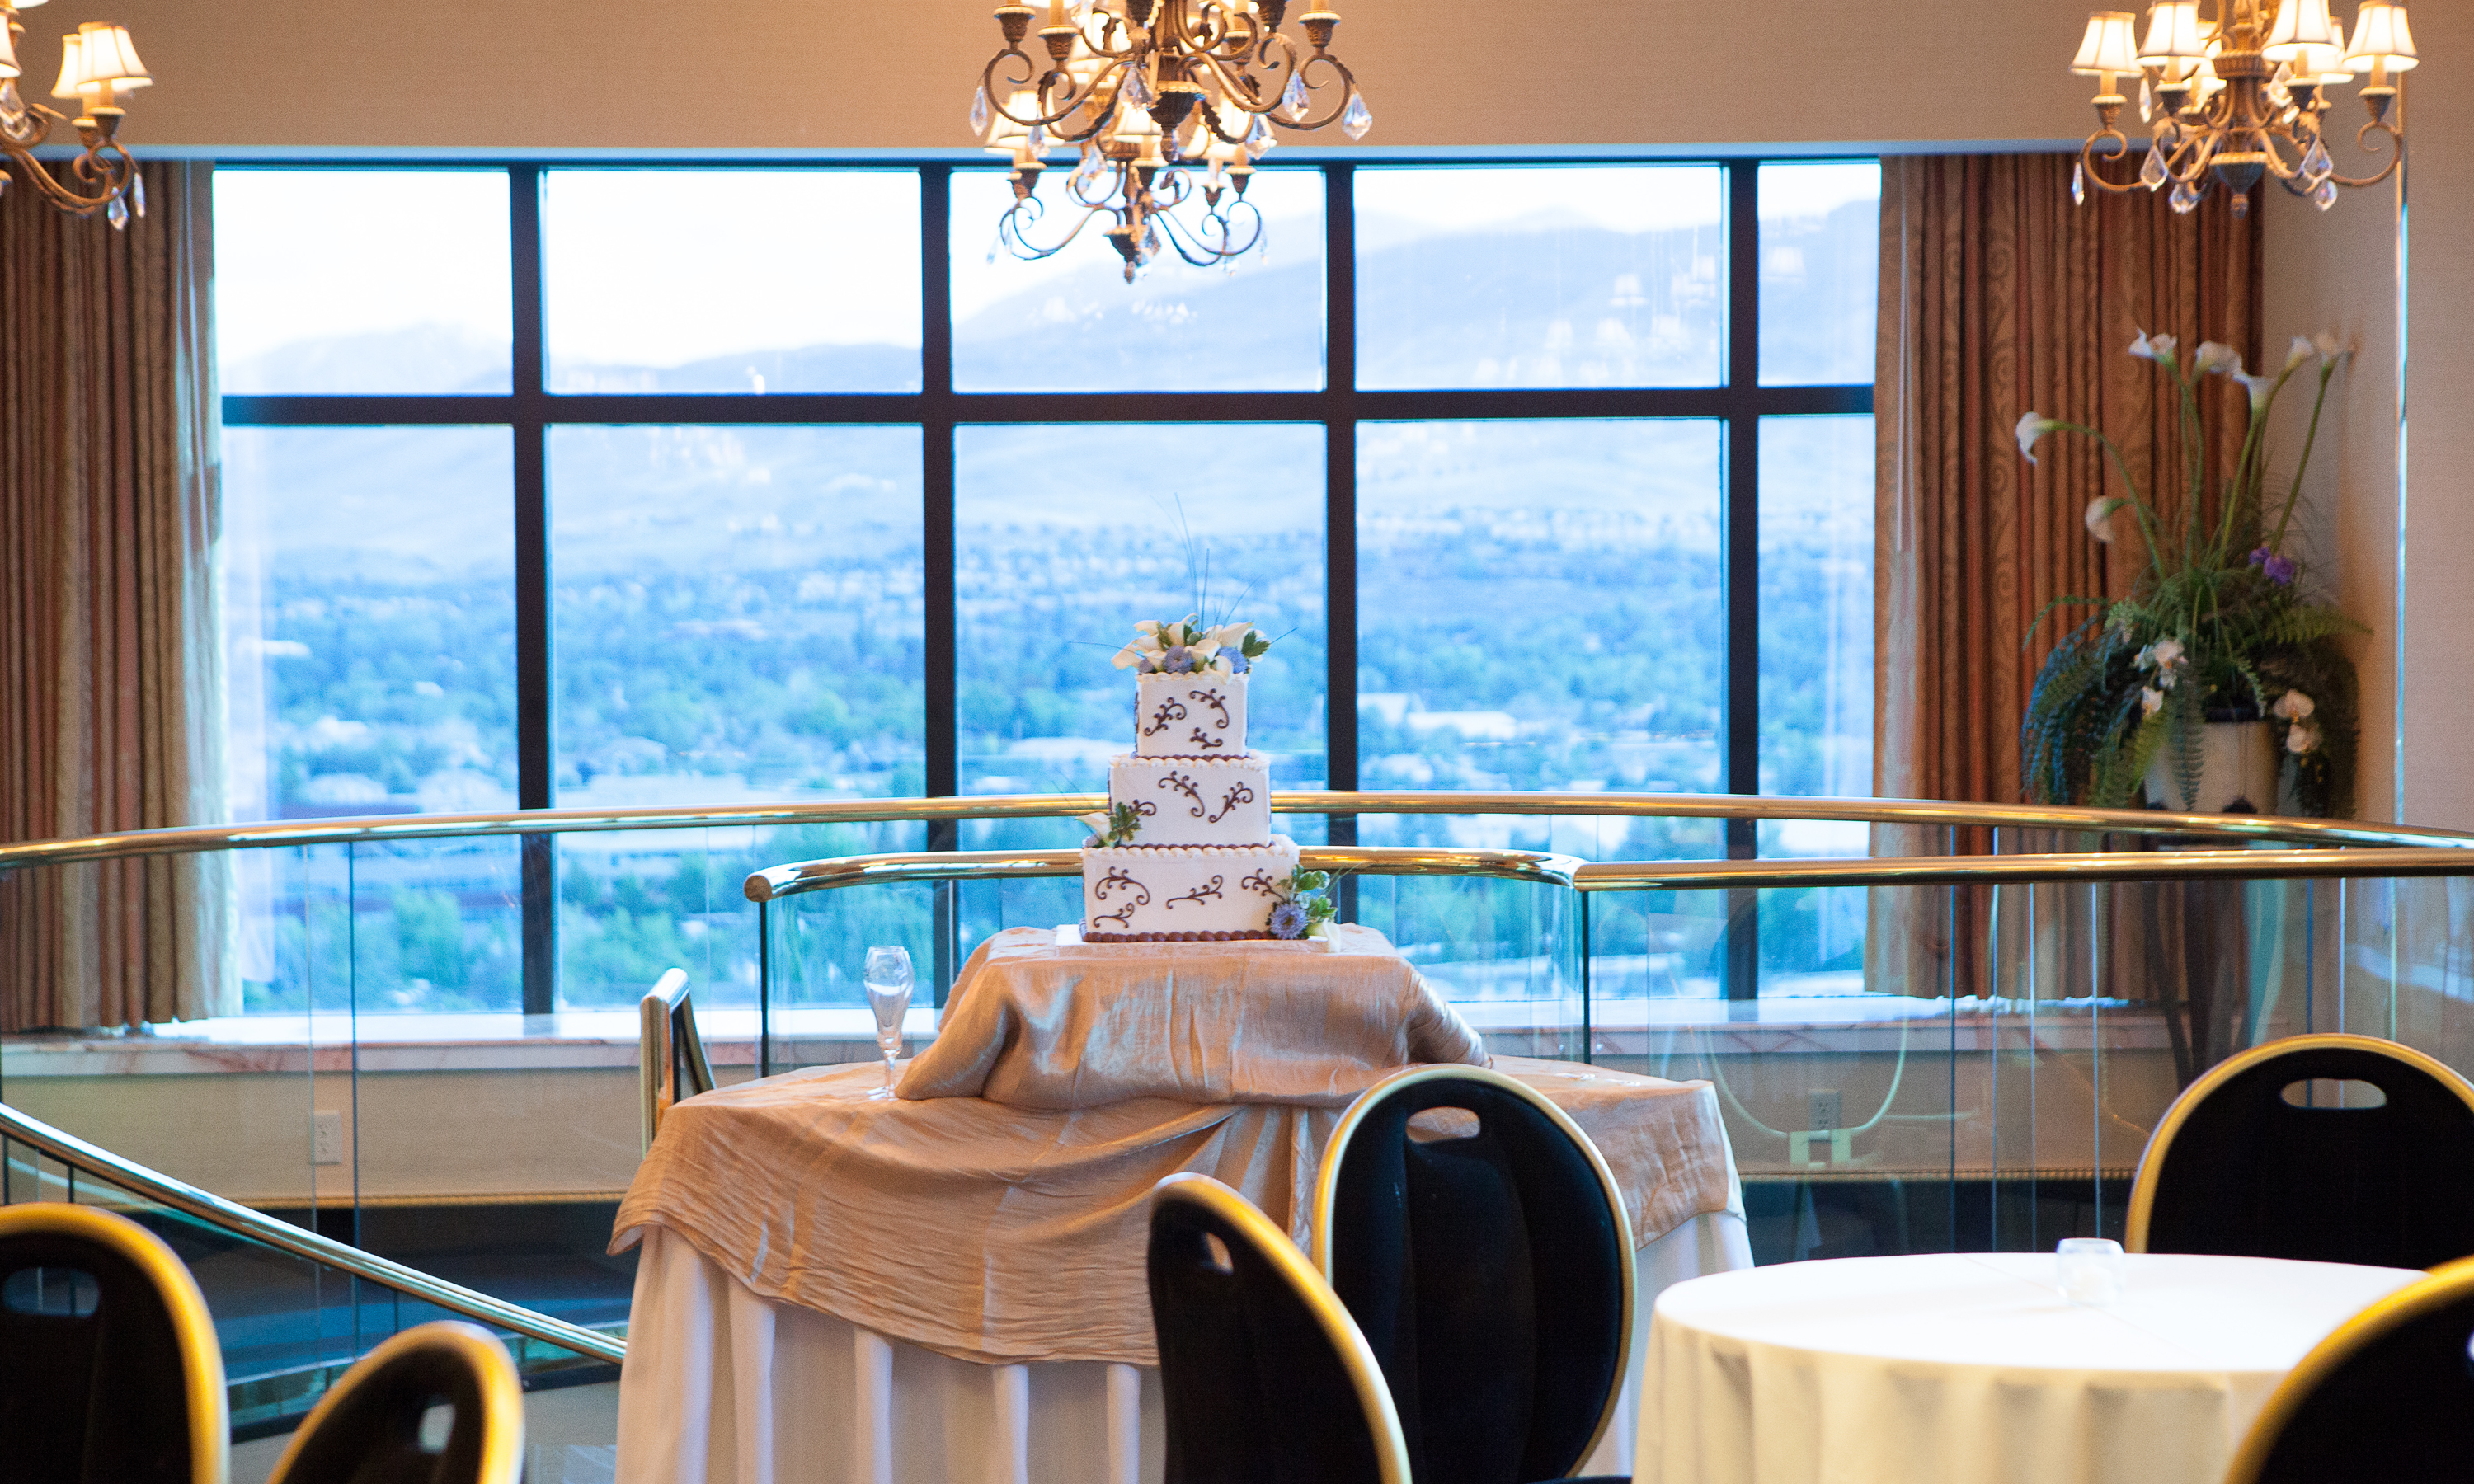 17th floor suites wedding venues at peppermill resort for 17th floor